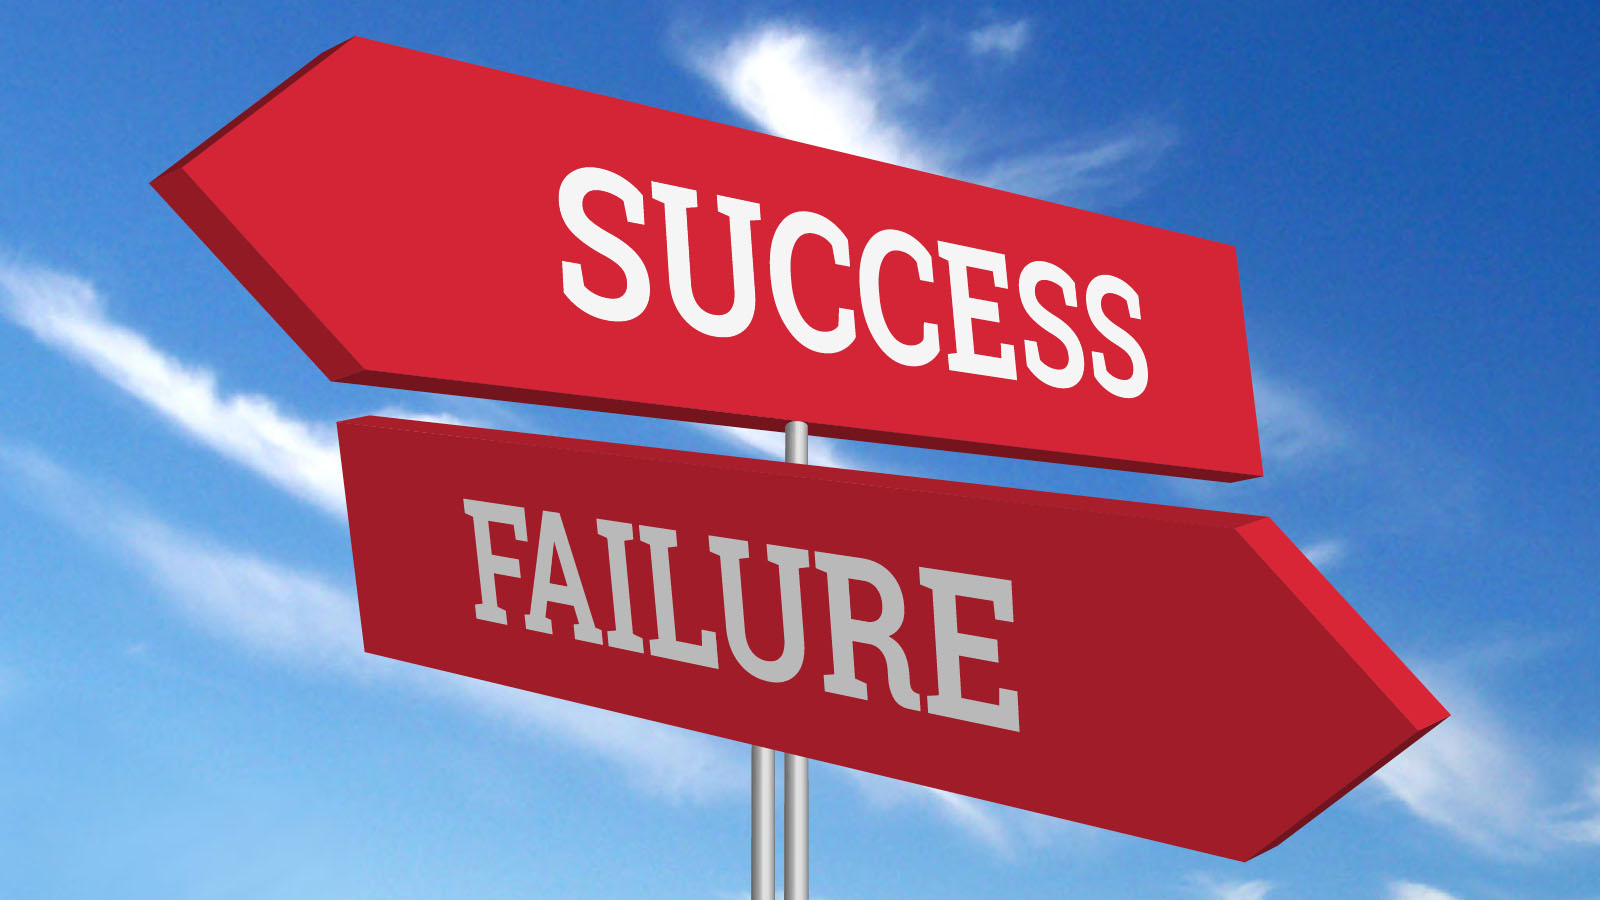 Two road signs - one pointing to success and the other pointing to failure.